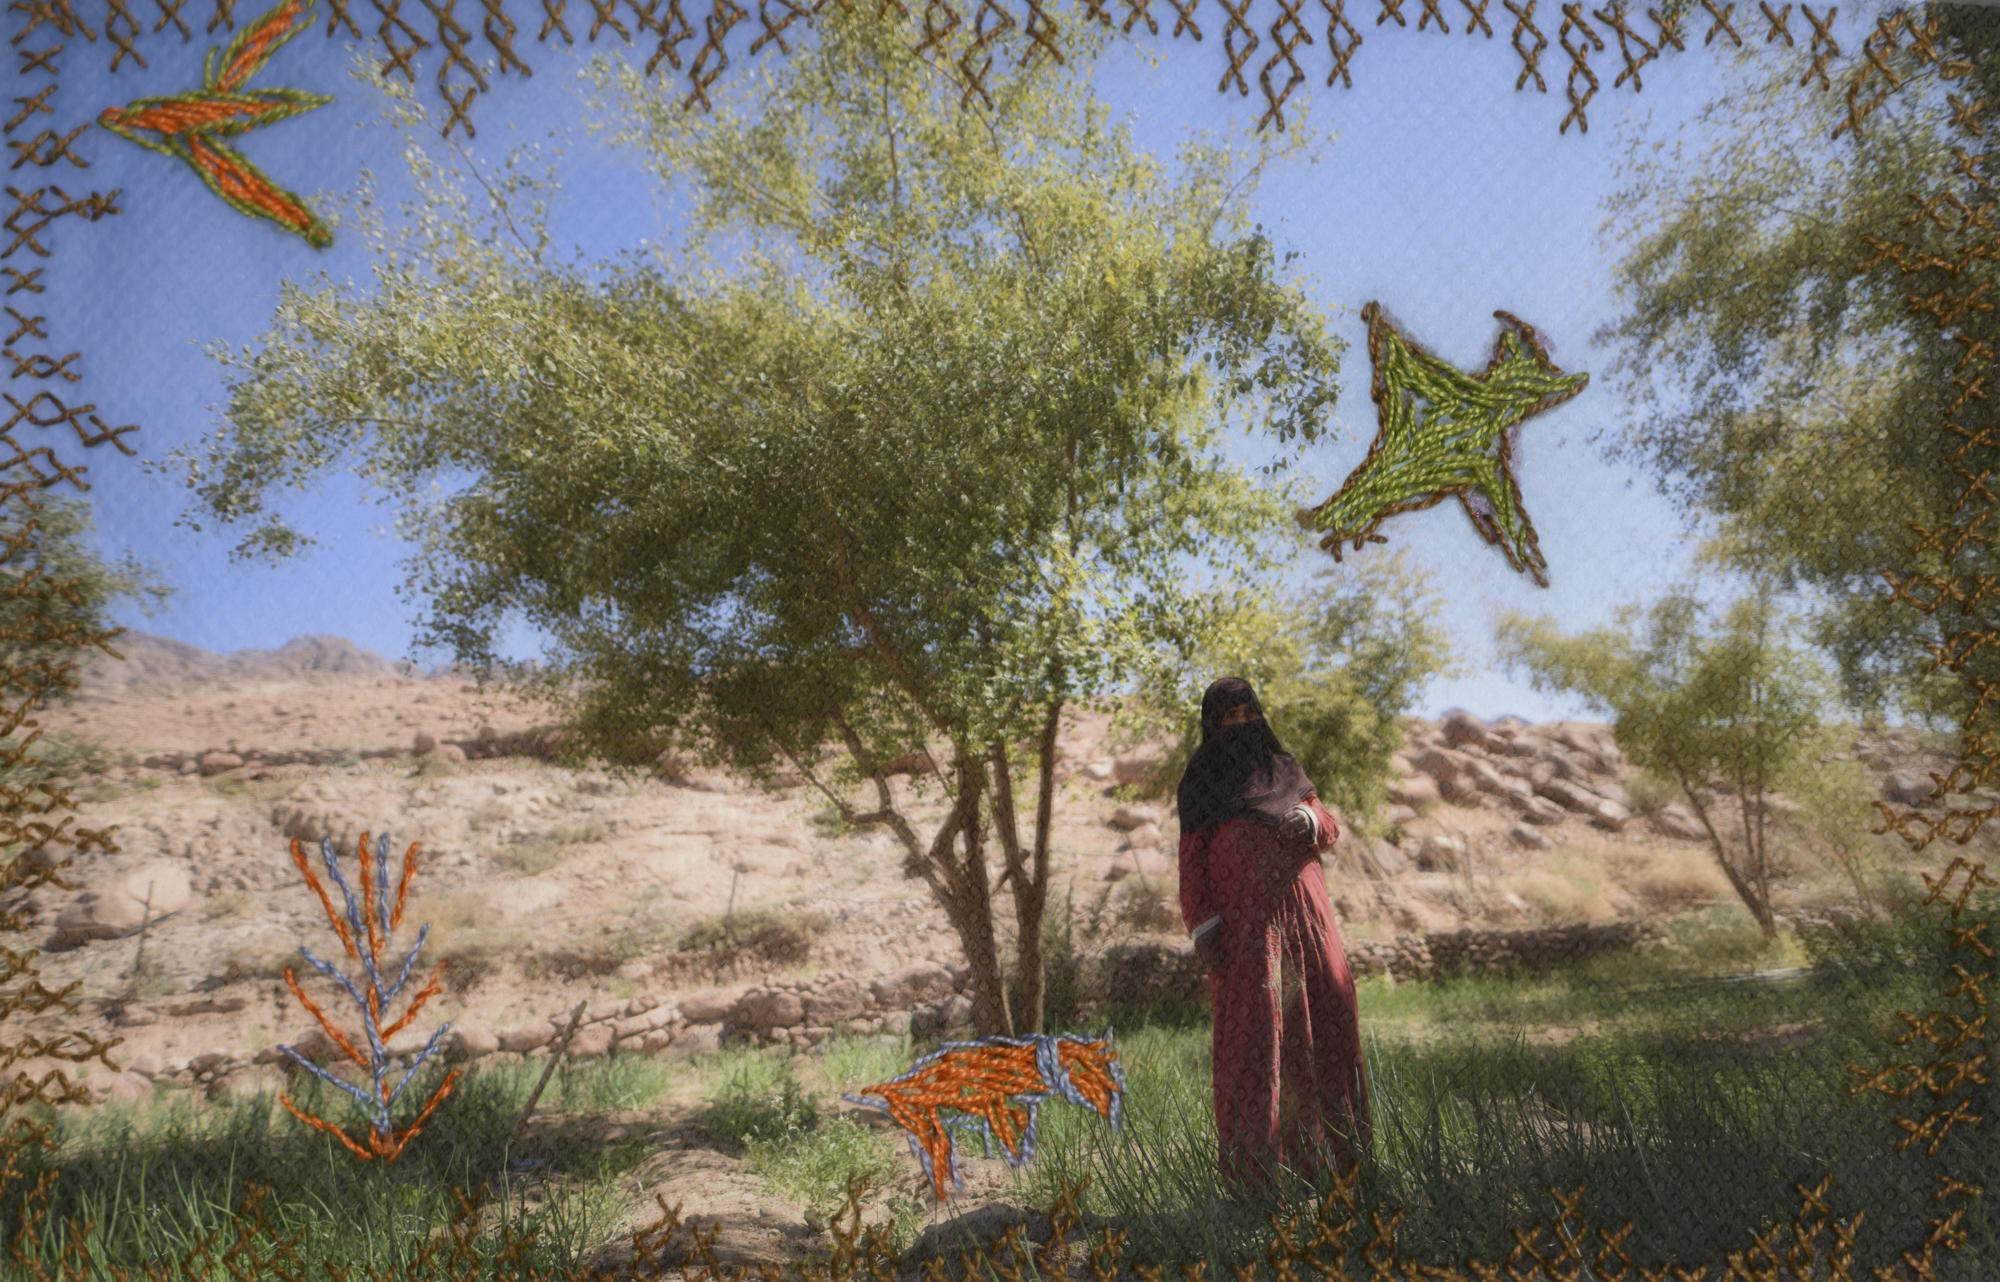 Embroidered photograph of Hajja Oum Mohamed (53) in her garden in Gharba Valley. Embroidery by her.